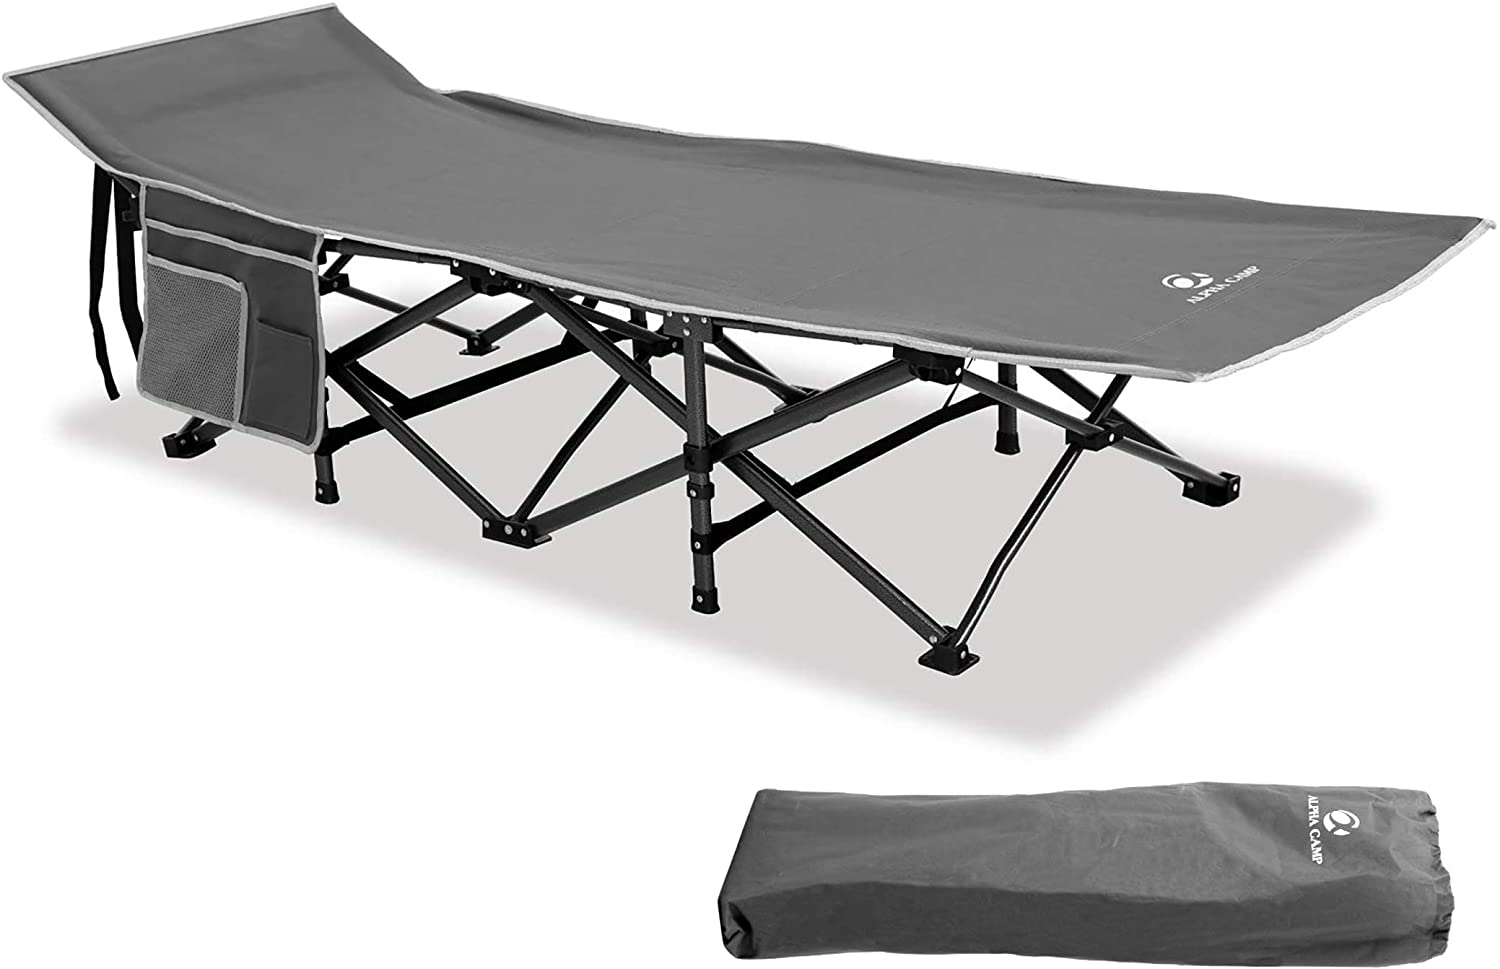 Camping World Foldable Camping Cot Bed Outdoor Portable for Adults Lightweight Oversized Heavy Duty Sleeping Cot Extra Wide with Carry Bag for Camping Outdoor Indoor, Travel Cot, Supports 600 lbs